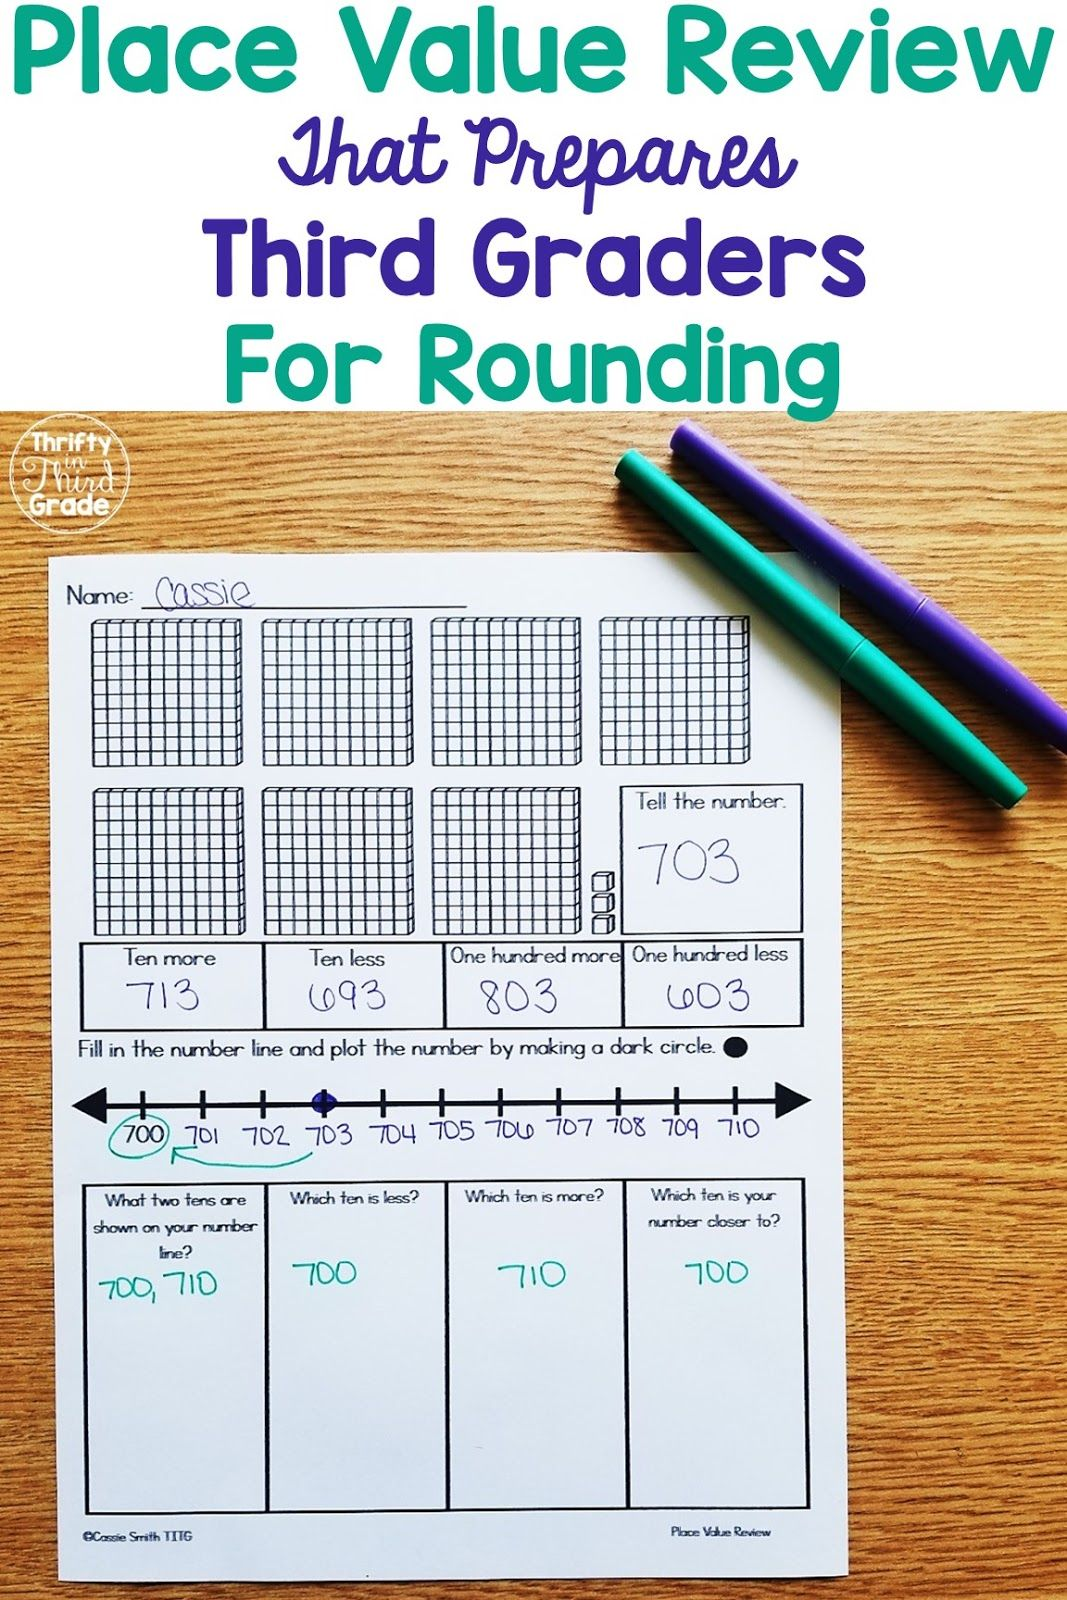 Place Value Review For Incoming Third Graders In